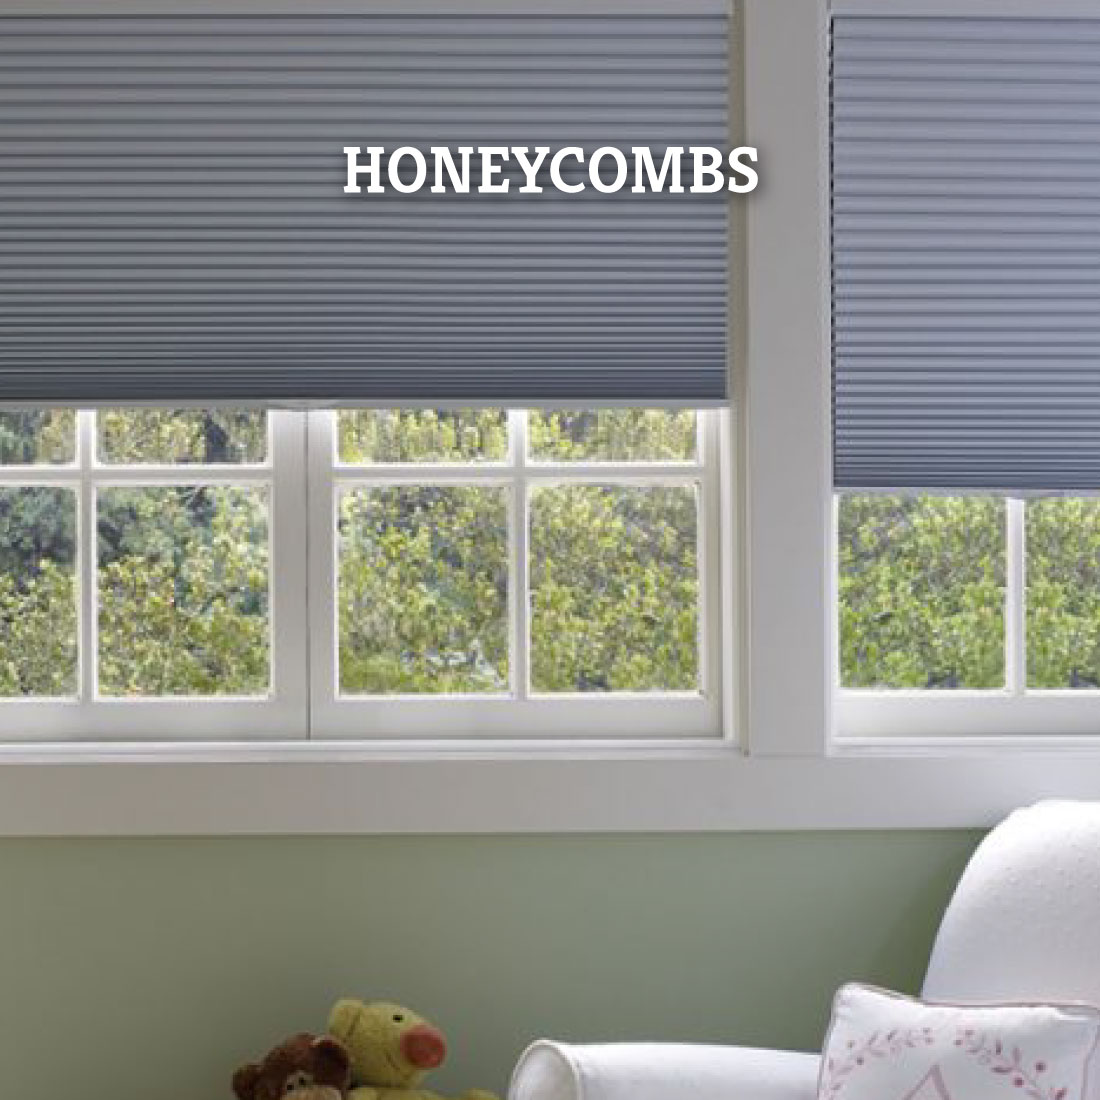 us honeycomb blinds dual disappearing luxurius window shades alta fashions